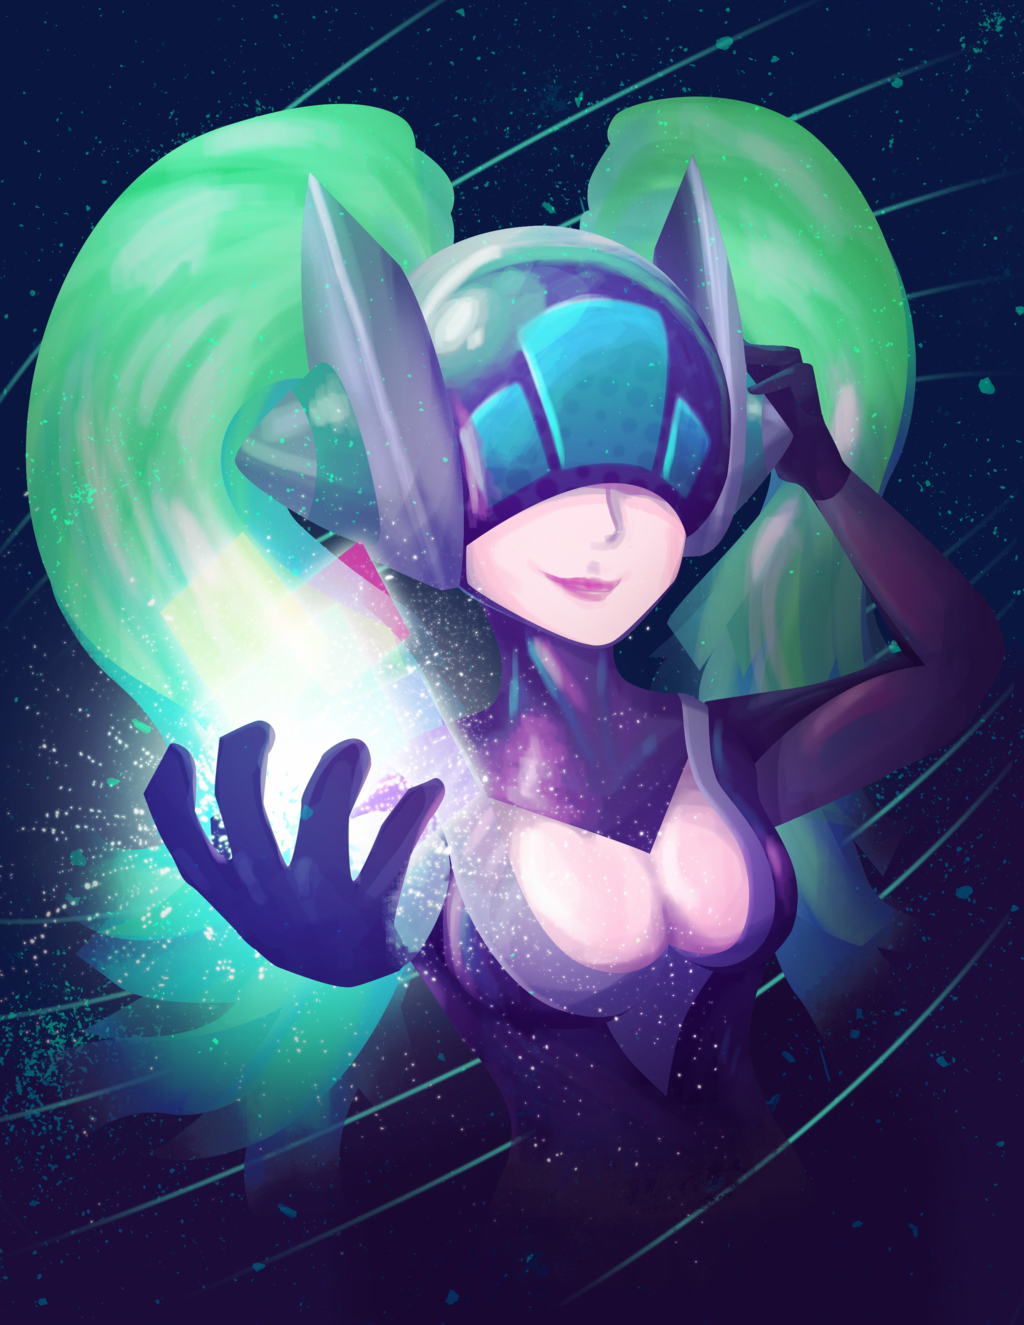 DJ Sona by Ravenide on DeviantArt.